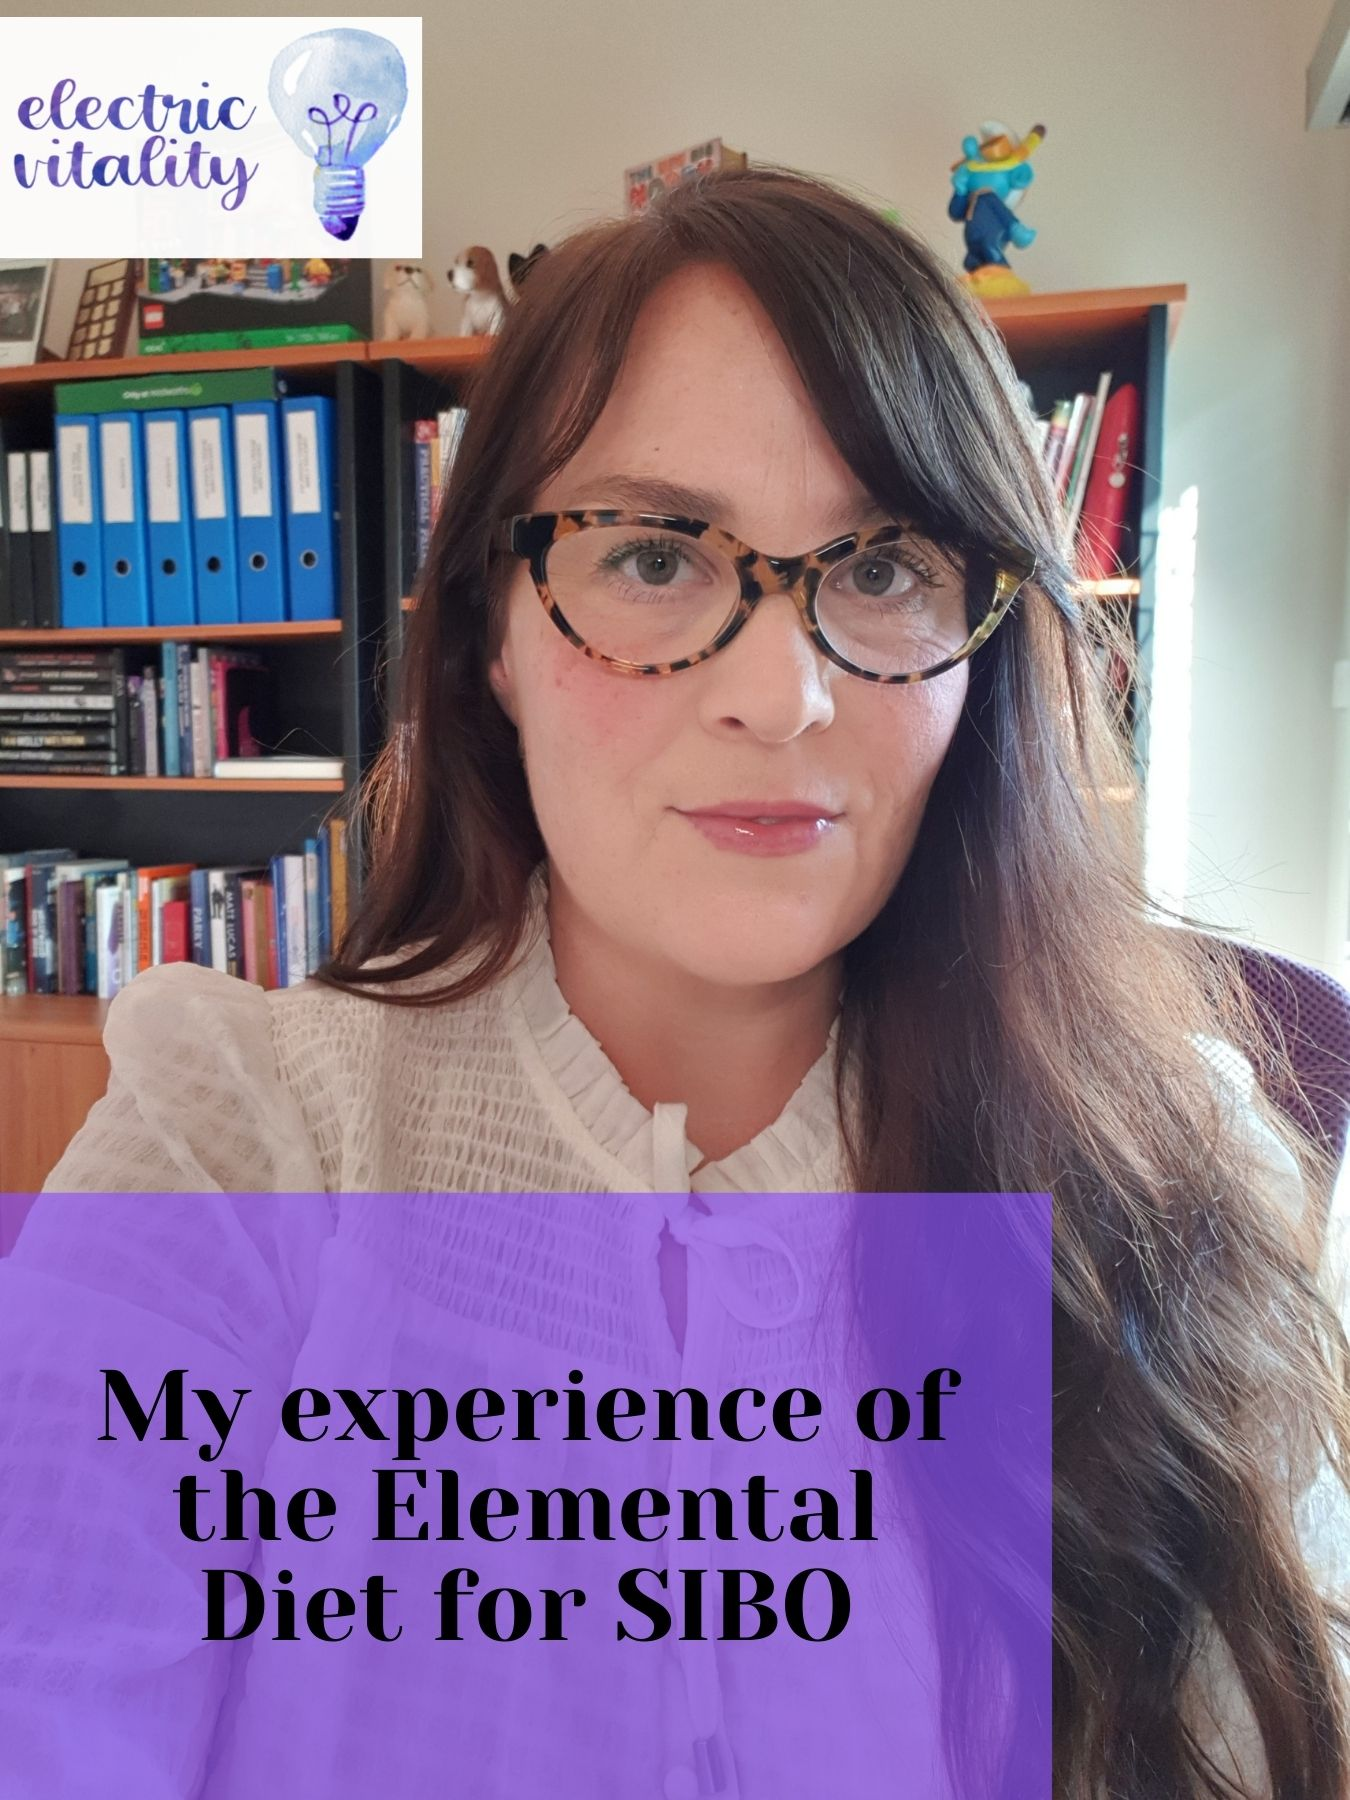 Image of Allison Jones with text overlay - My experience of the Elemental Diet for SIBO